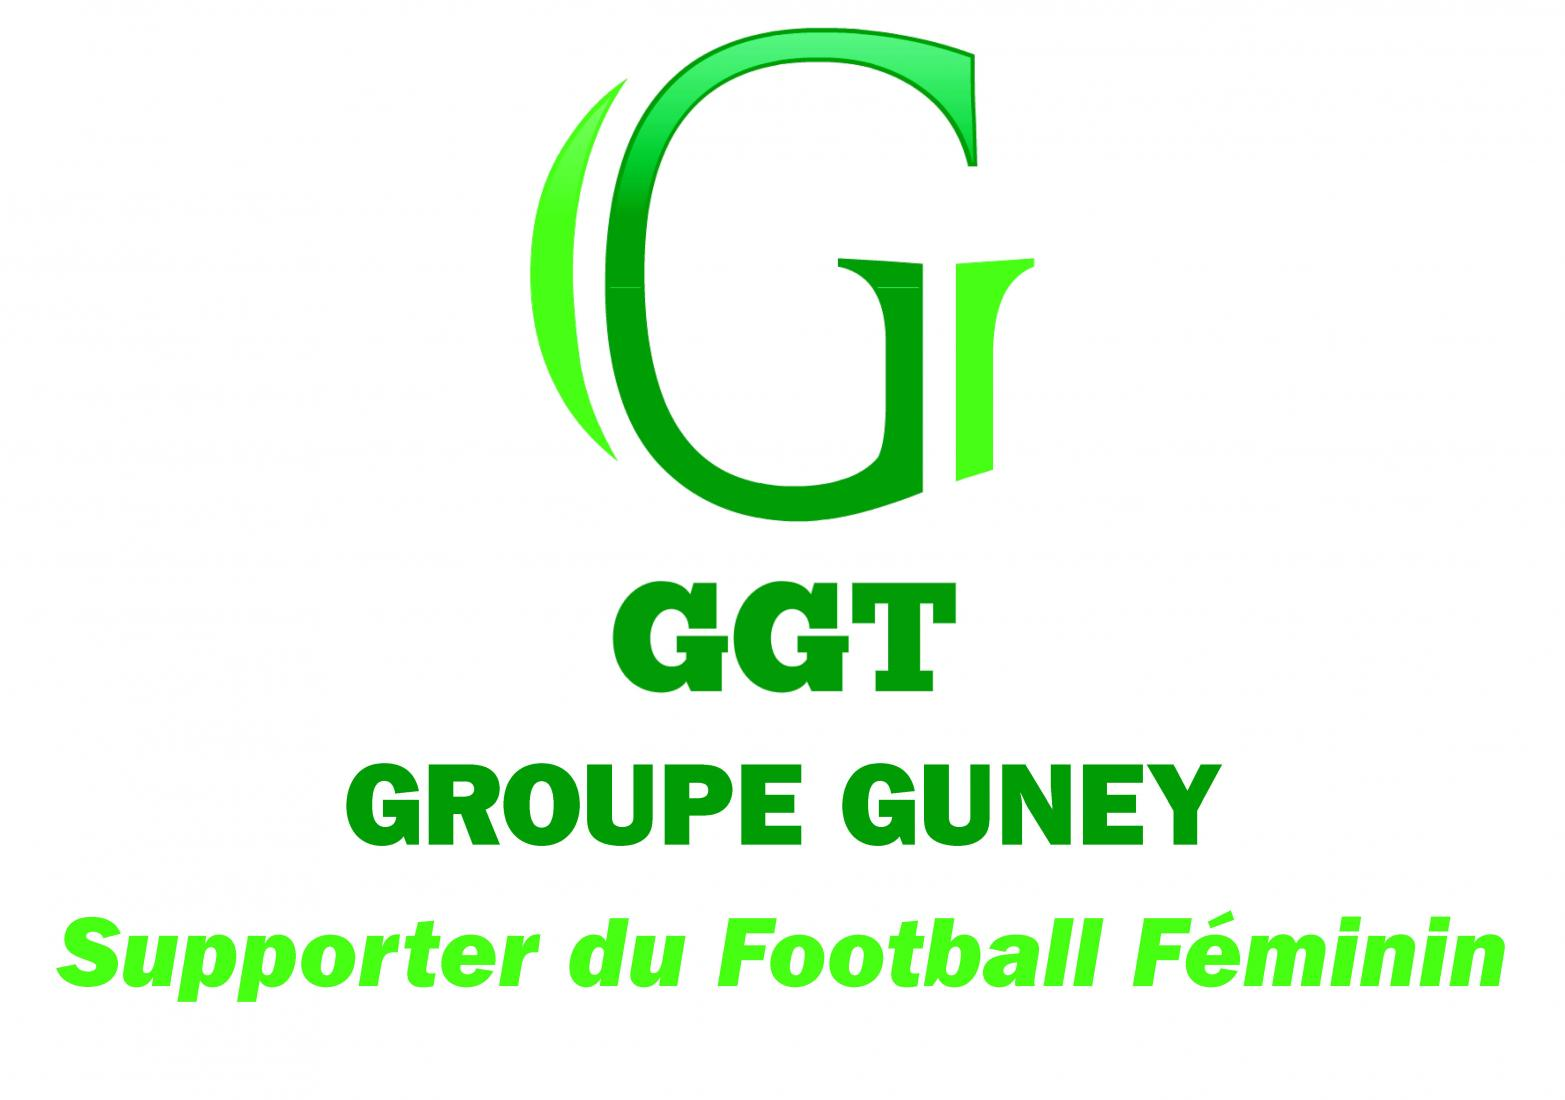 GROUPE GUNEY